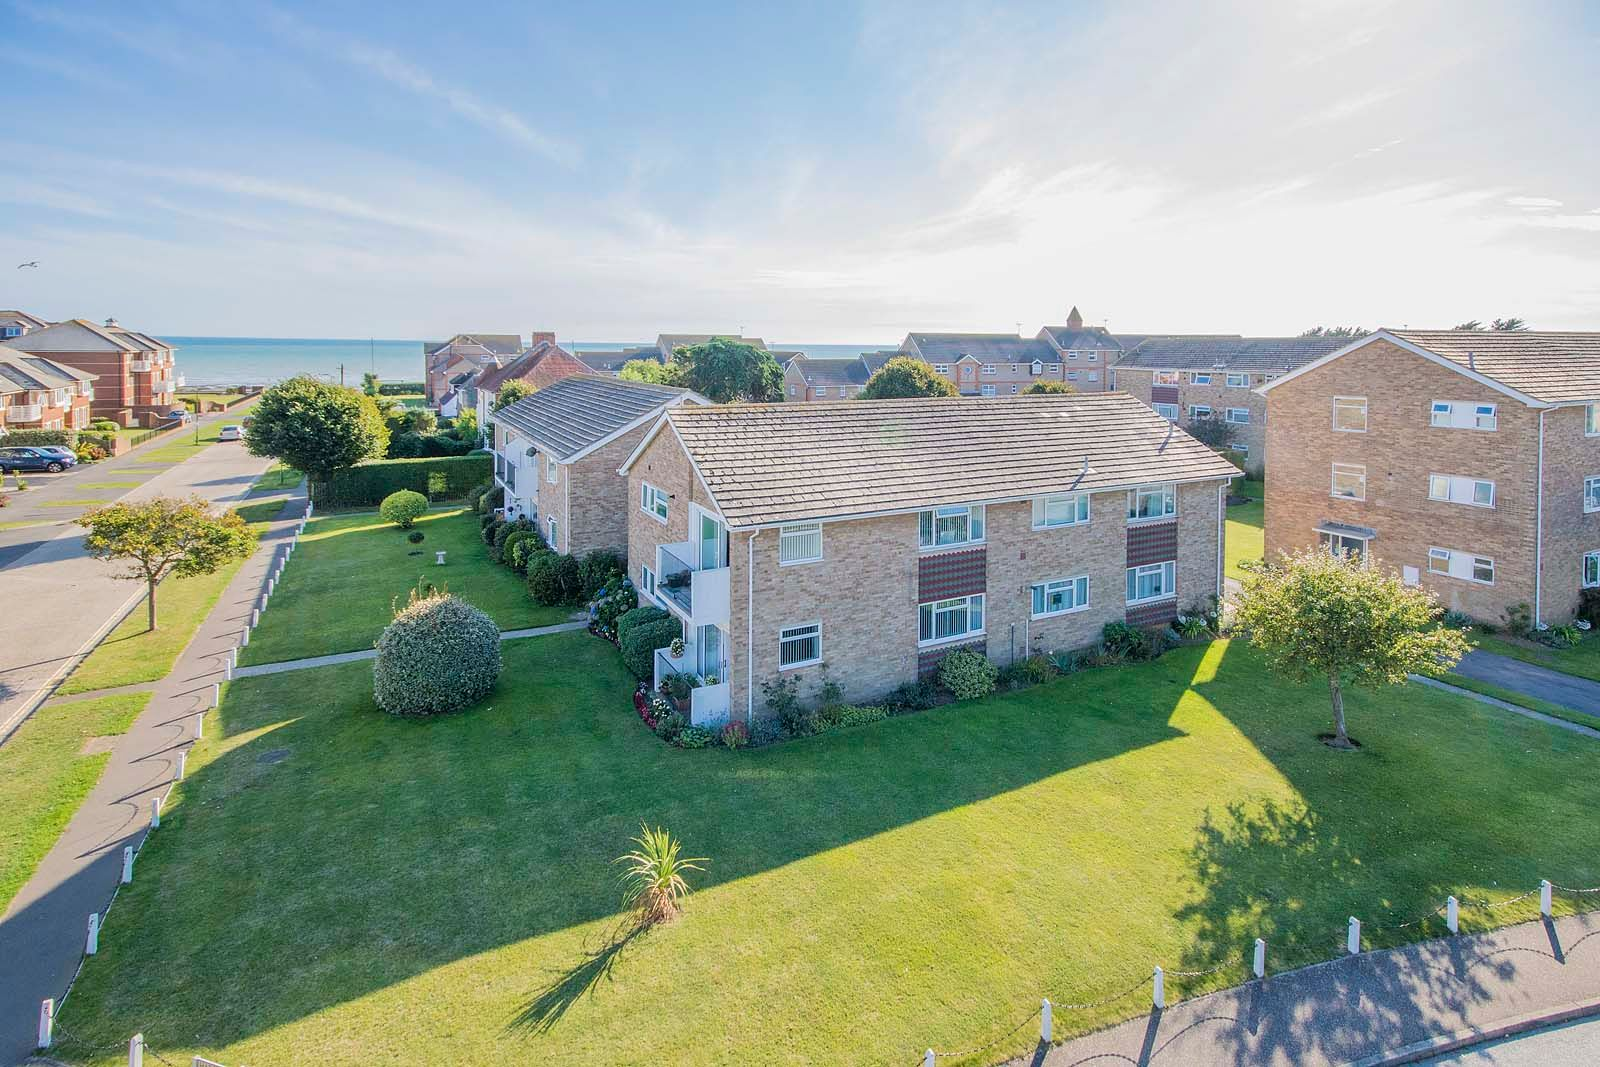 2 bed  for sale in Harsfold Close COMP MAY 2019 - Property Image 1